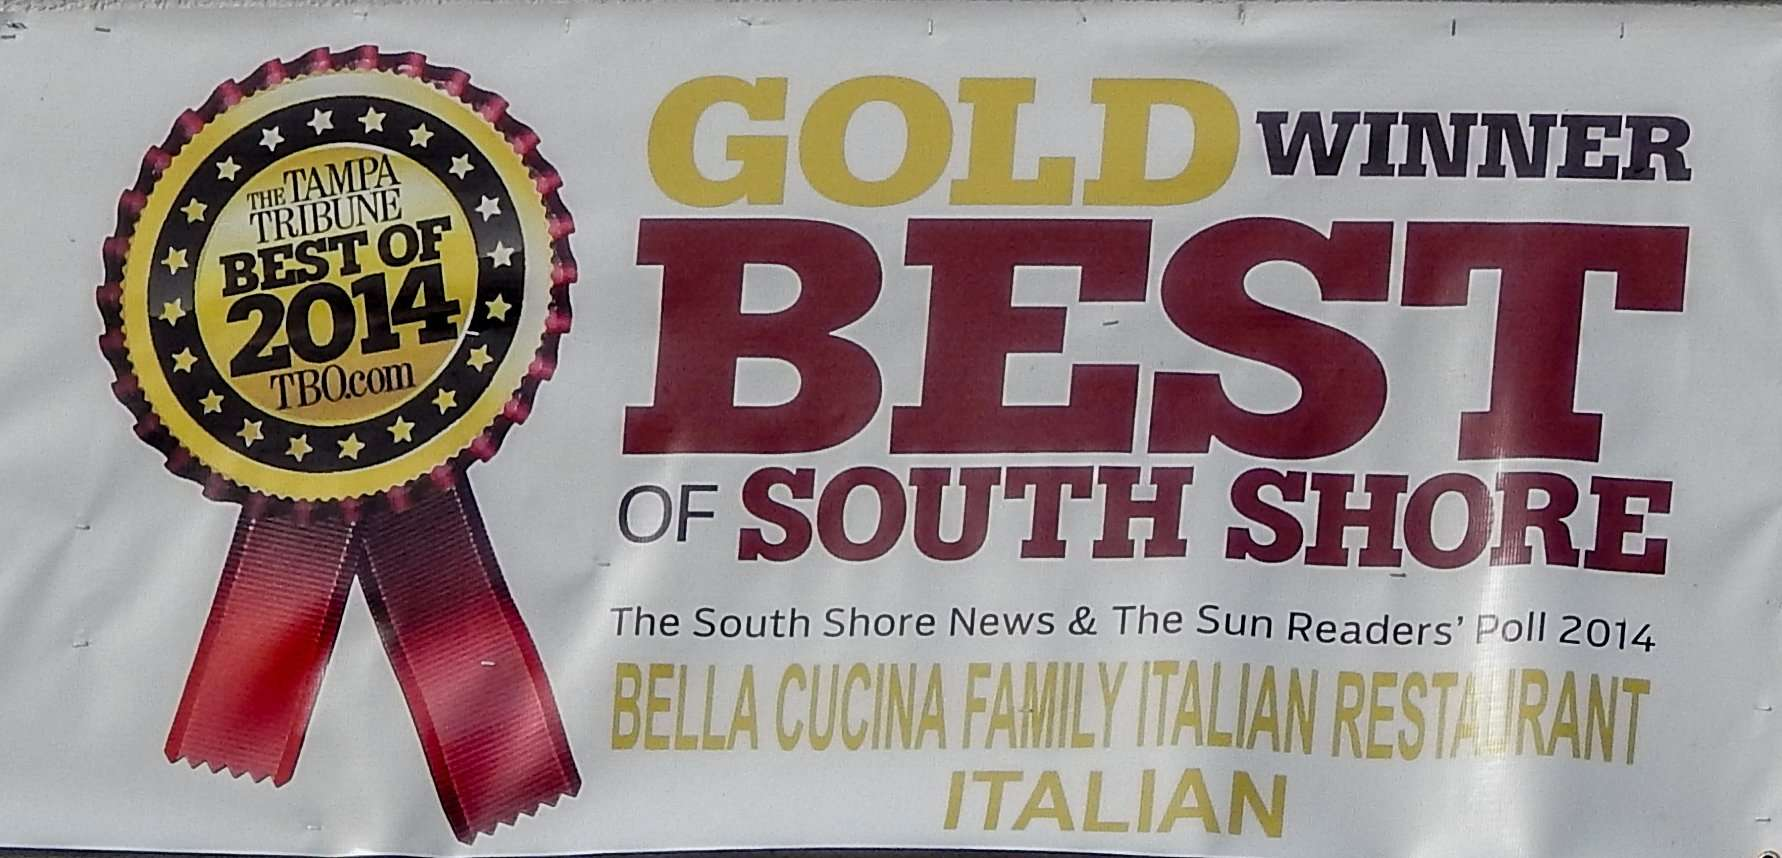 BELLA CUSINA Family Italian Restaurant Receives Tampa Tribune Best Of 2014 Gold Winne and the Best of South Shore form The South Shore News & The Sun Readers Poll 2014/photonews 247.com